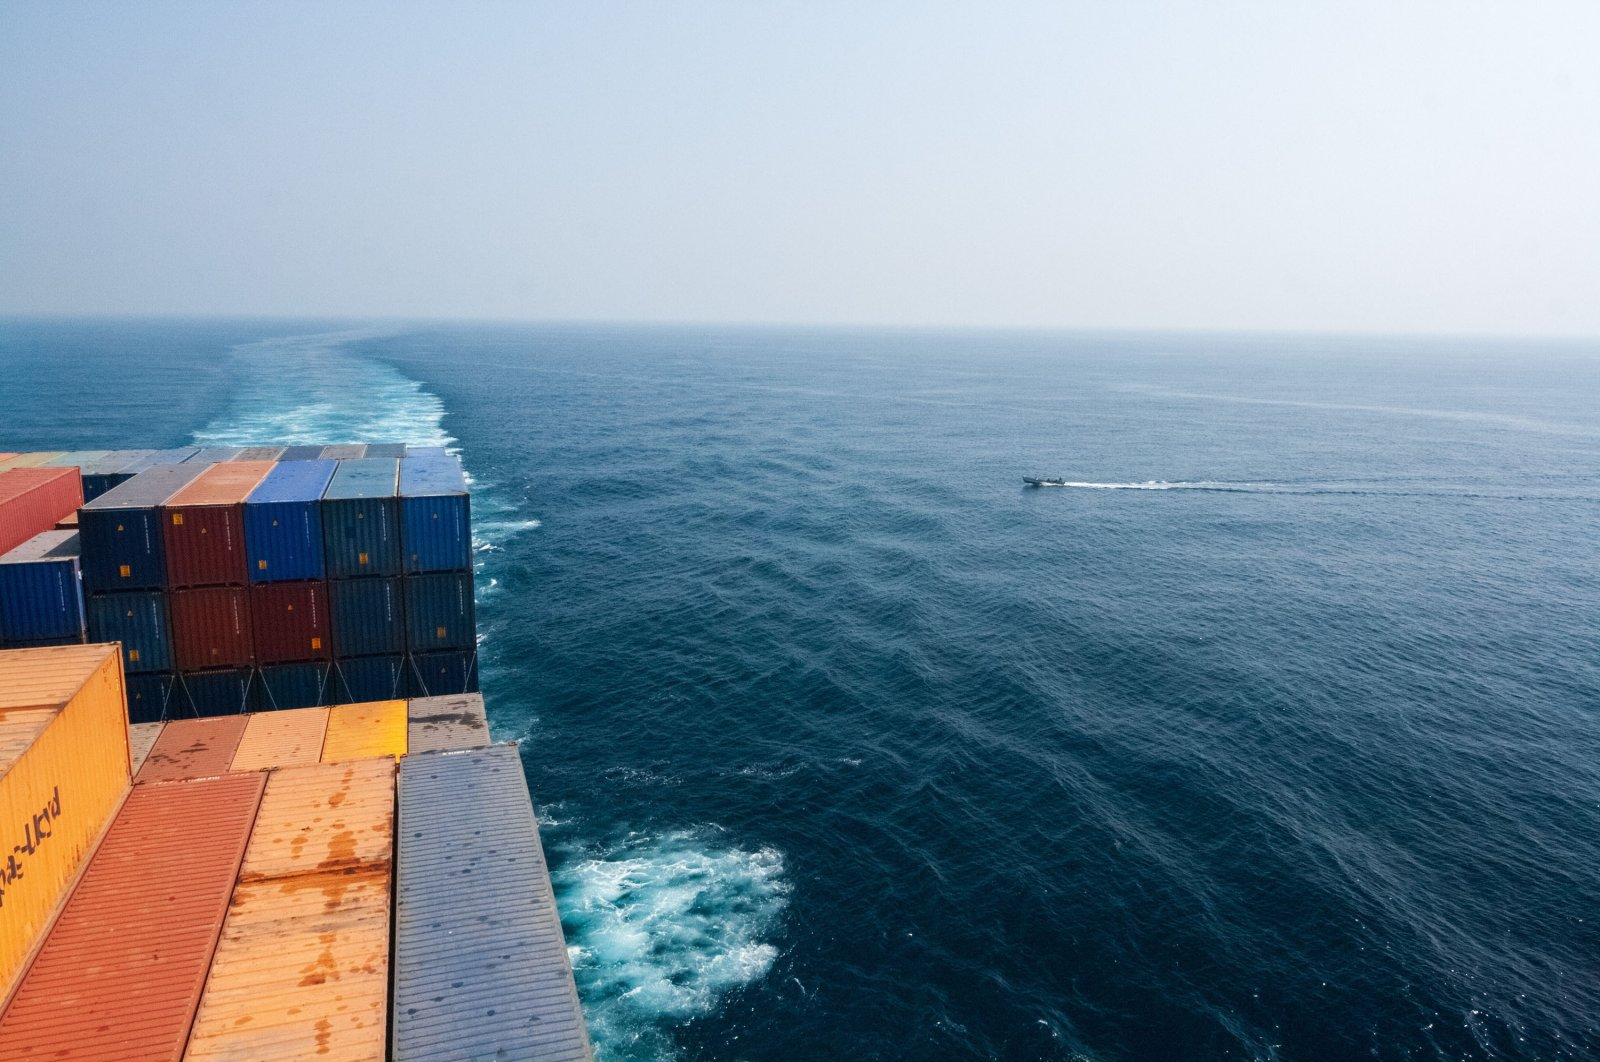 Illustration of a probable act of piracy on a cargo ship off the Horn of Africa off the coast of Somalia in the Gulf of Aden, Yemen, on Jan. 11, 2017. (File photo by Camille Delbos / Art In All of Us / Corbis via Getty Images)